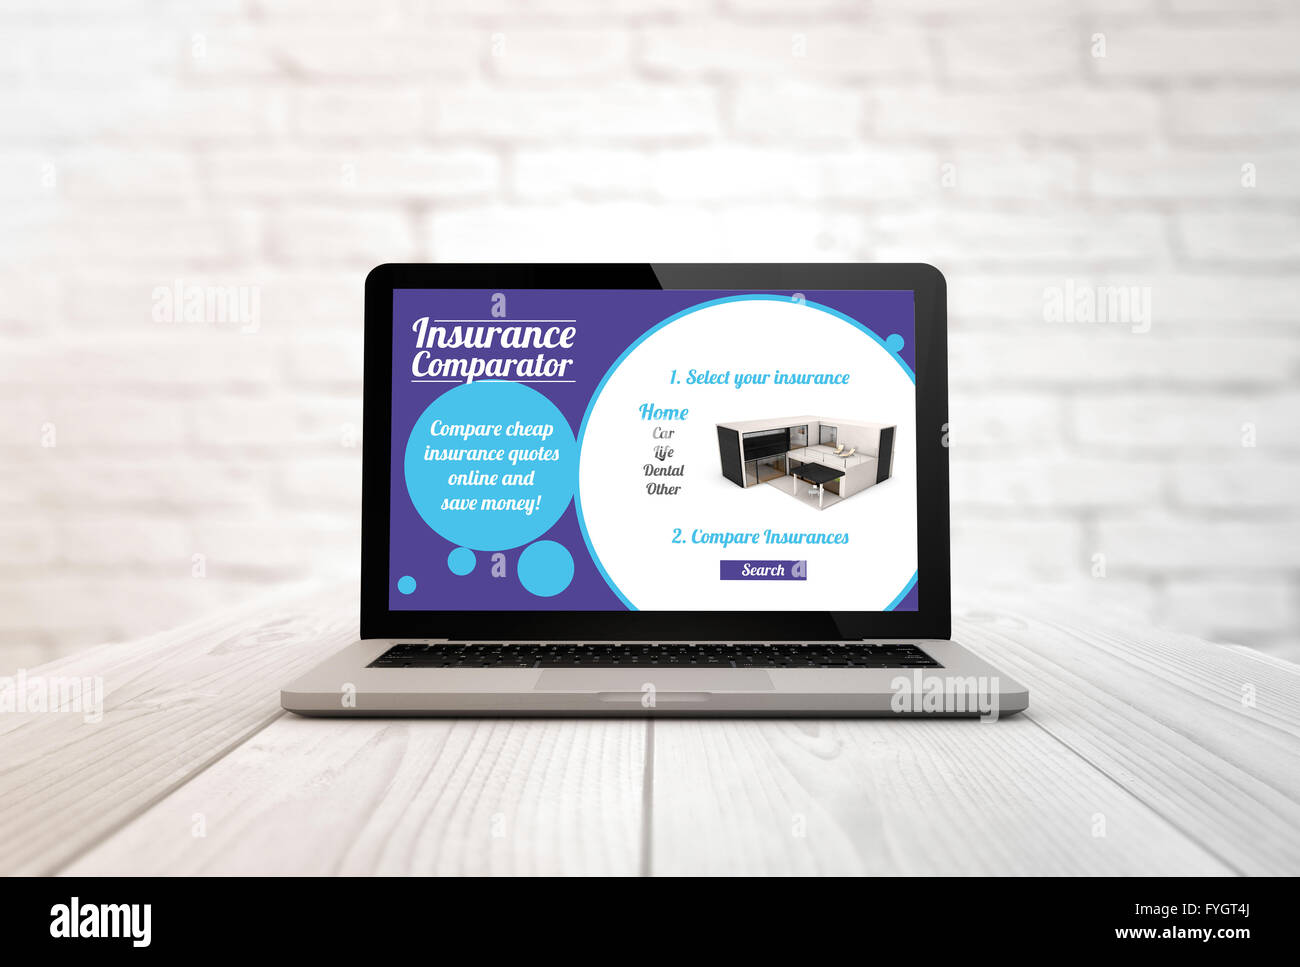 insurance hiring concept: digitally generated laptop on a wooden table with online insurance comparator. Screen - Stock Image